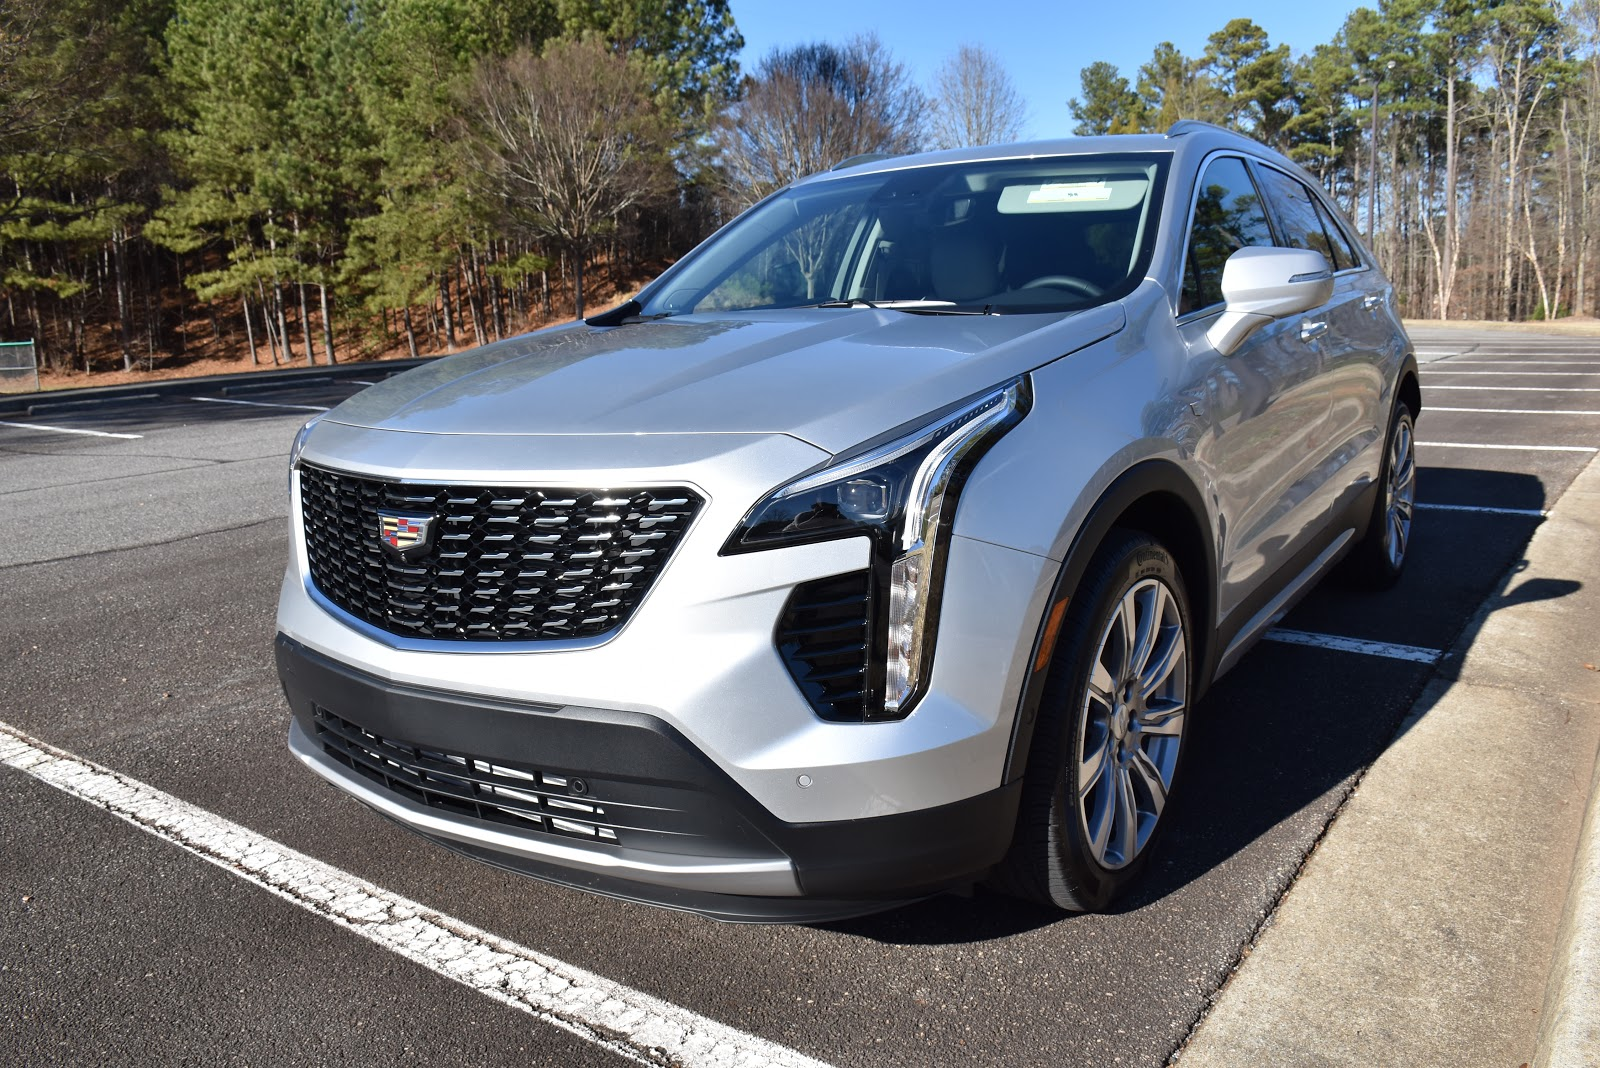 2020 Cadillac XT4 Grille and Headlight